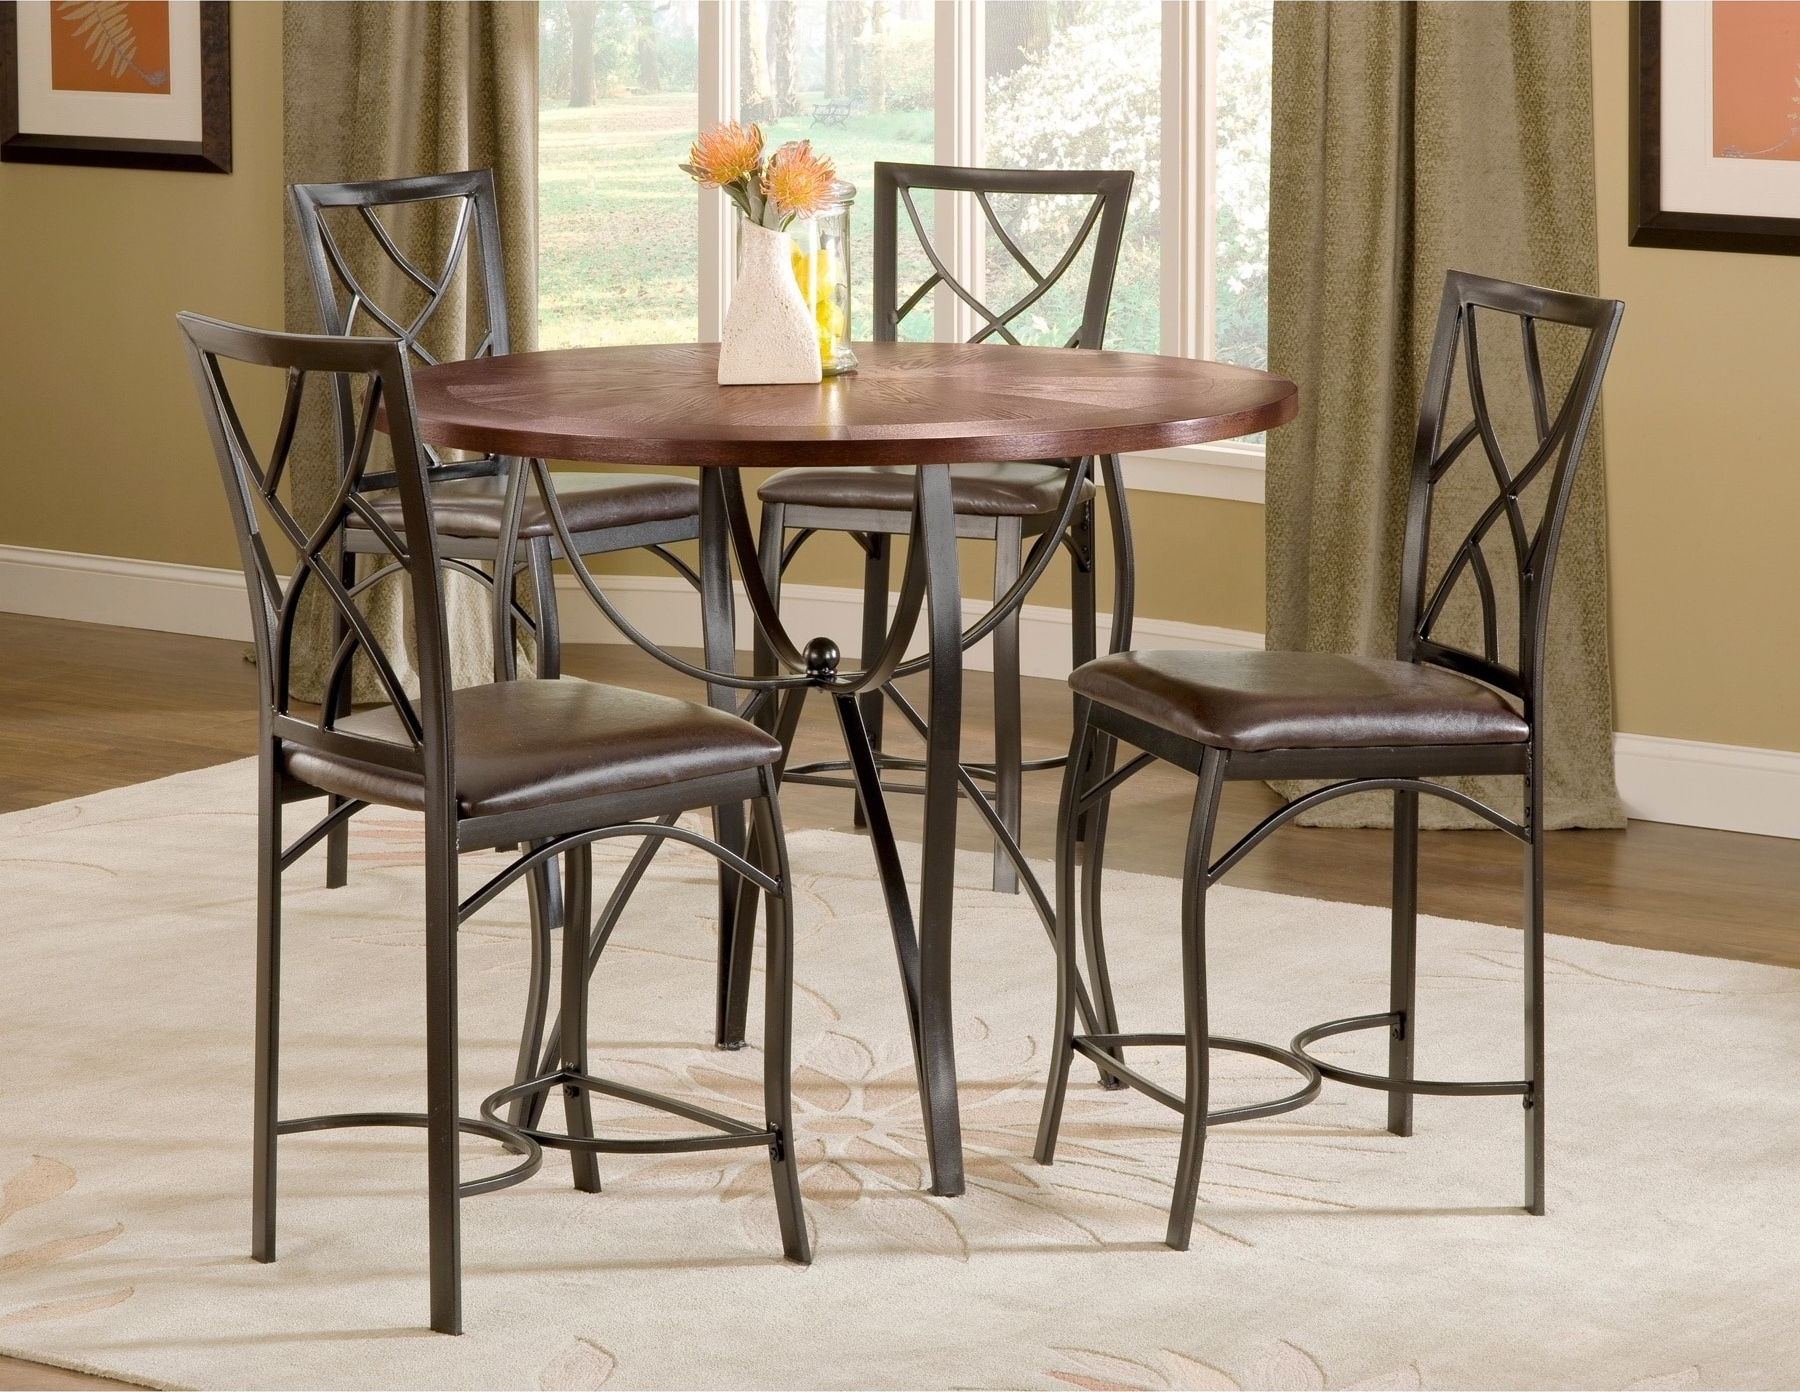 Jaxon 5 Piece Extension Counter Sets With Fabric Stools With Favorite Sanford Merlot 5 Piece Counter Height Table And 4 Chairs Black Metal (View 12 of 25)